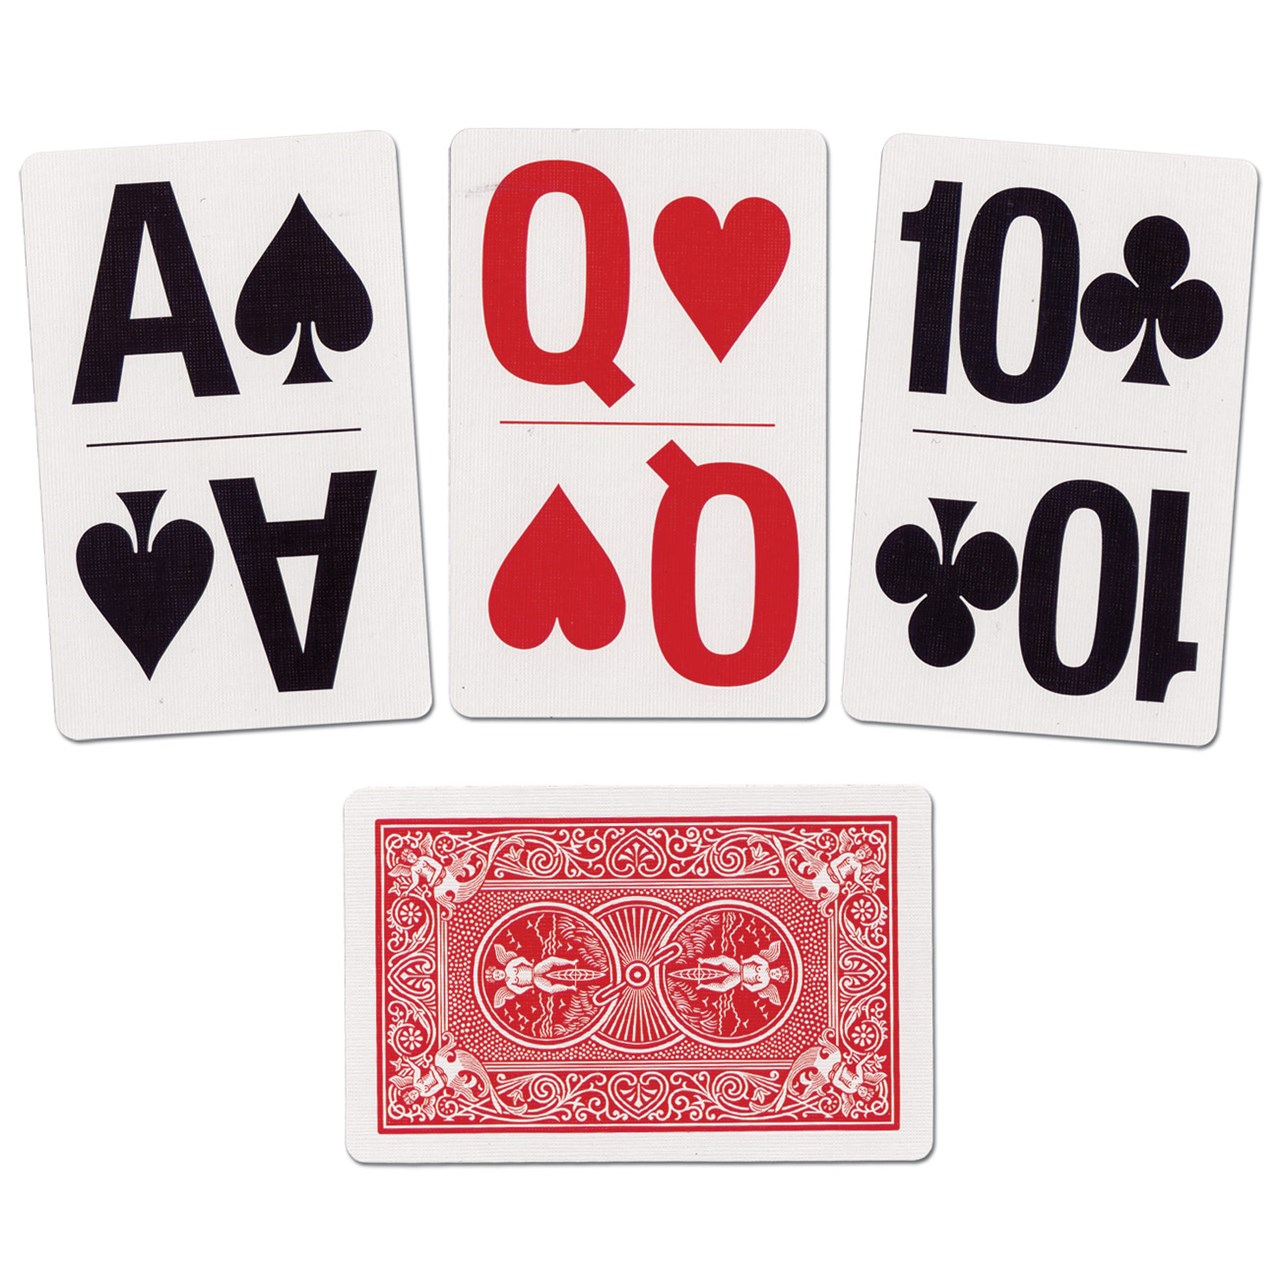 Large Print Bridge Size Playing Cards - Walmart.com